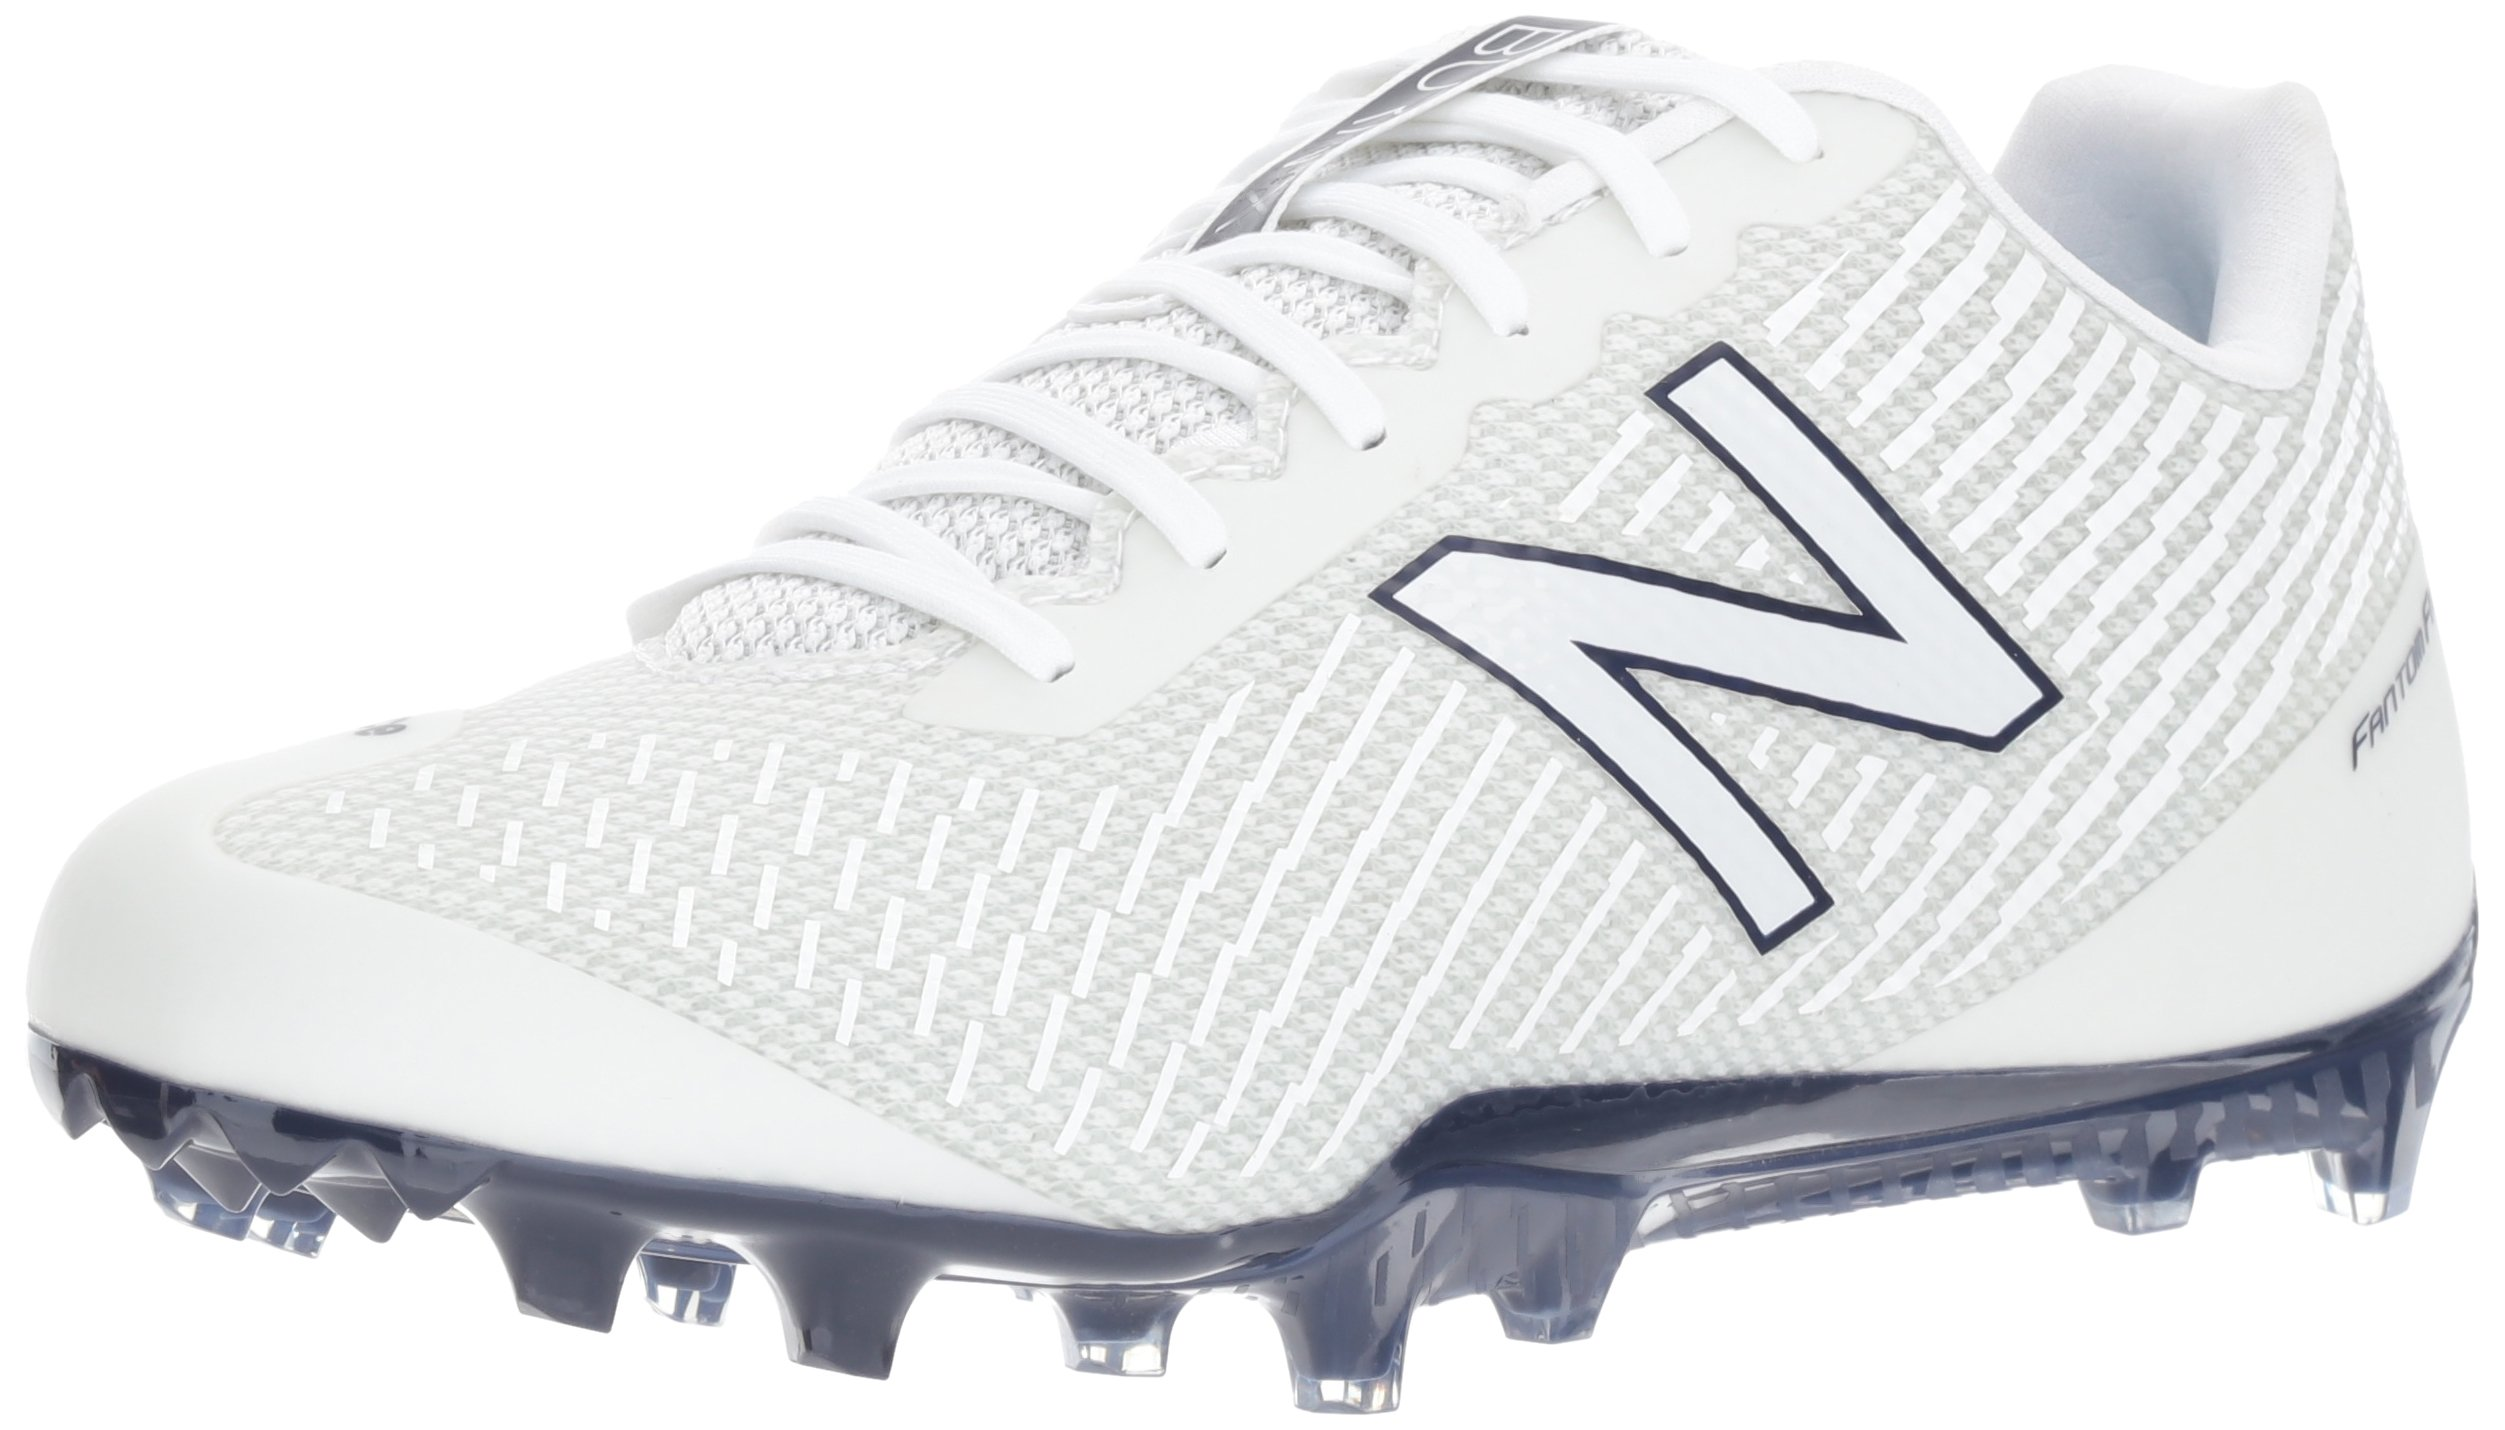 New Balance Men's Burn Low Speed Lacrosse Shoe, White/Blue, 6.5 2E US